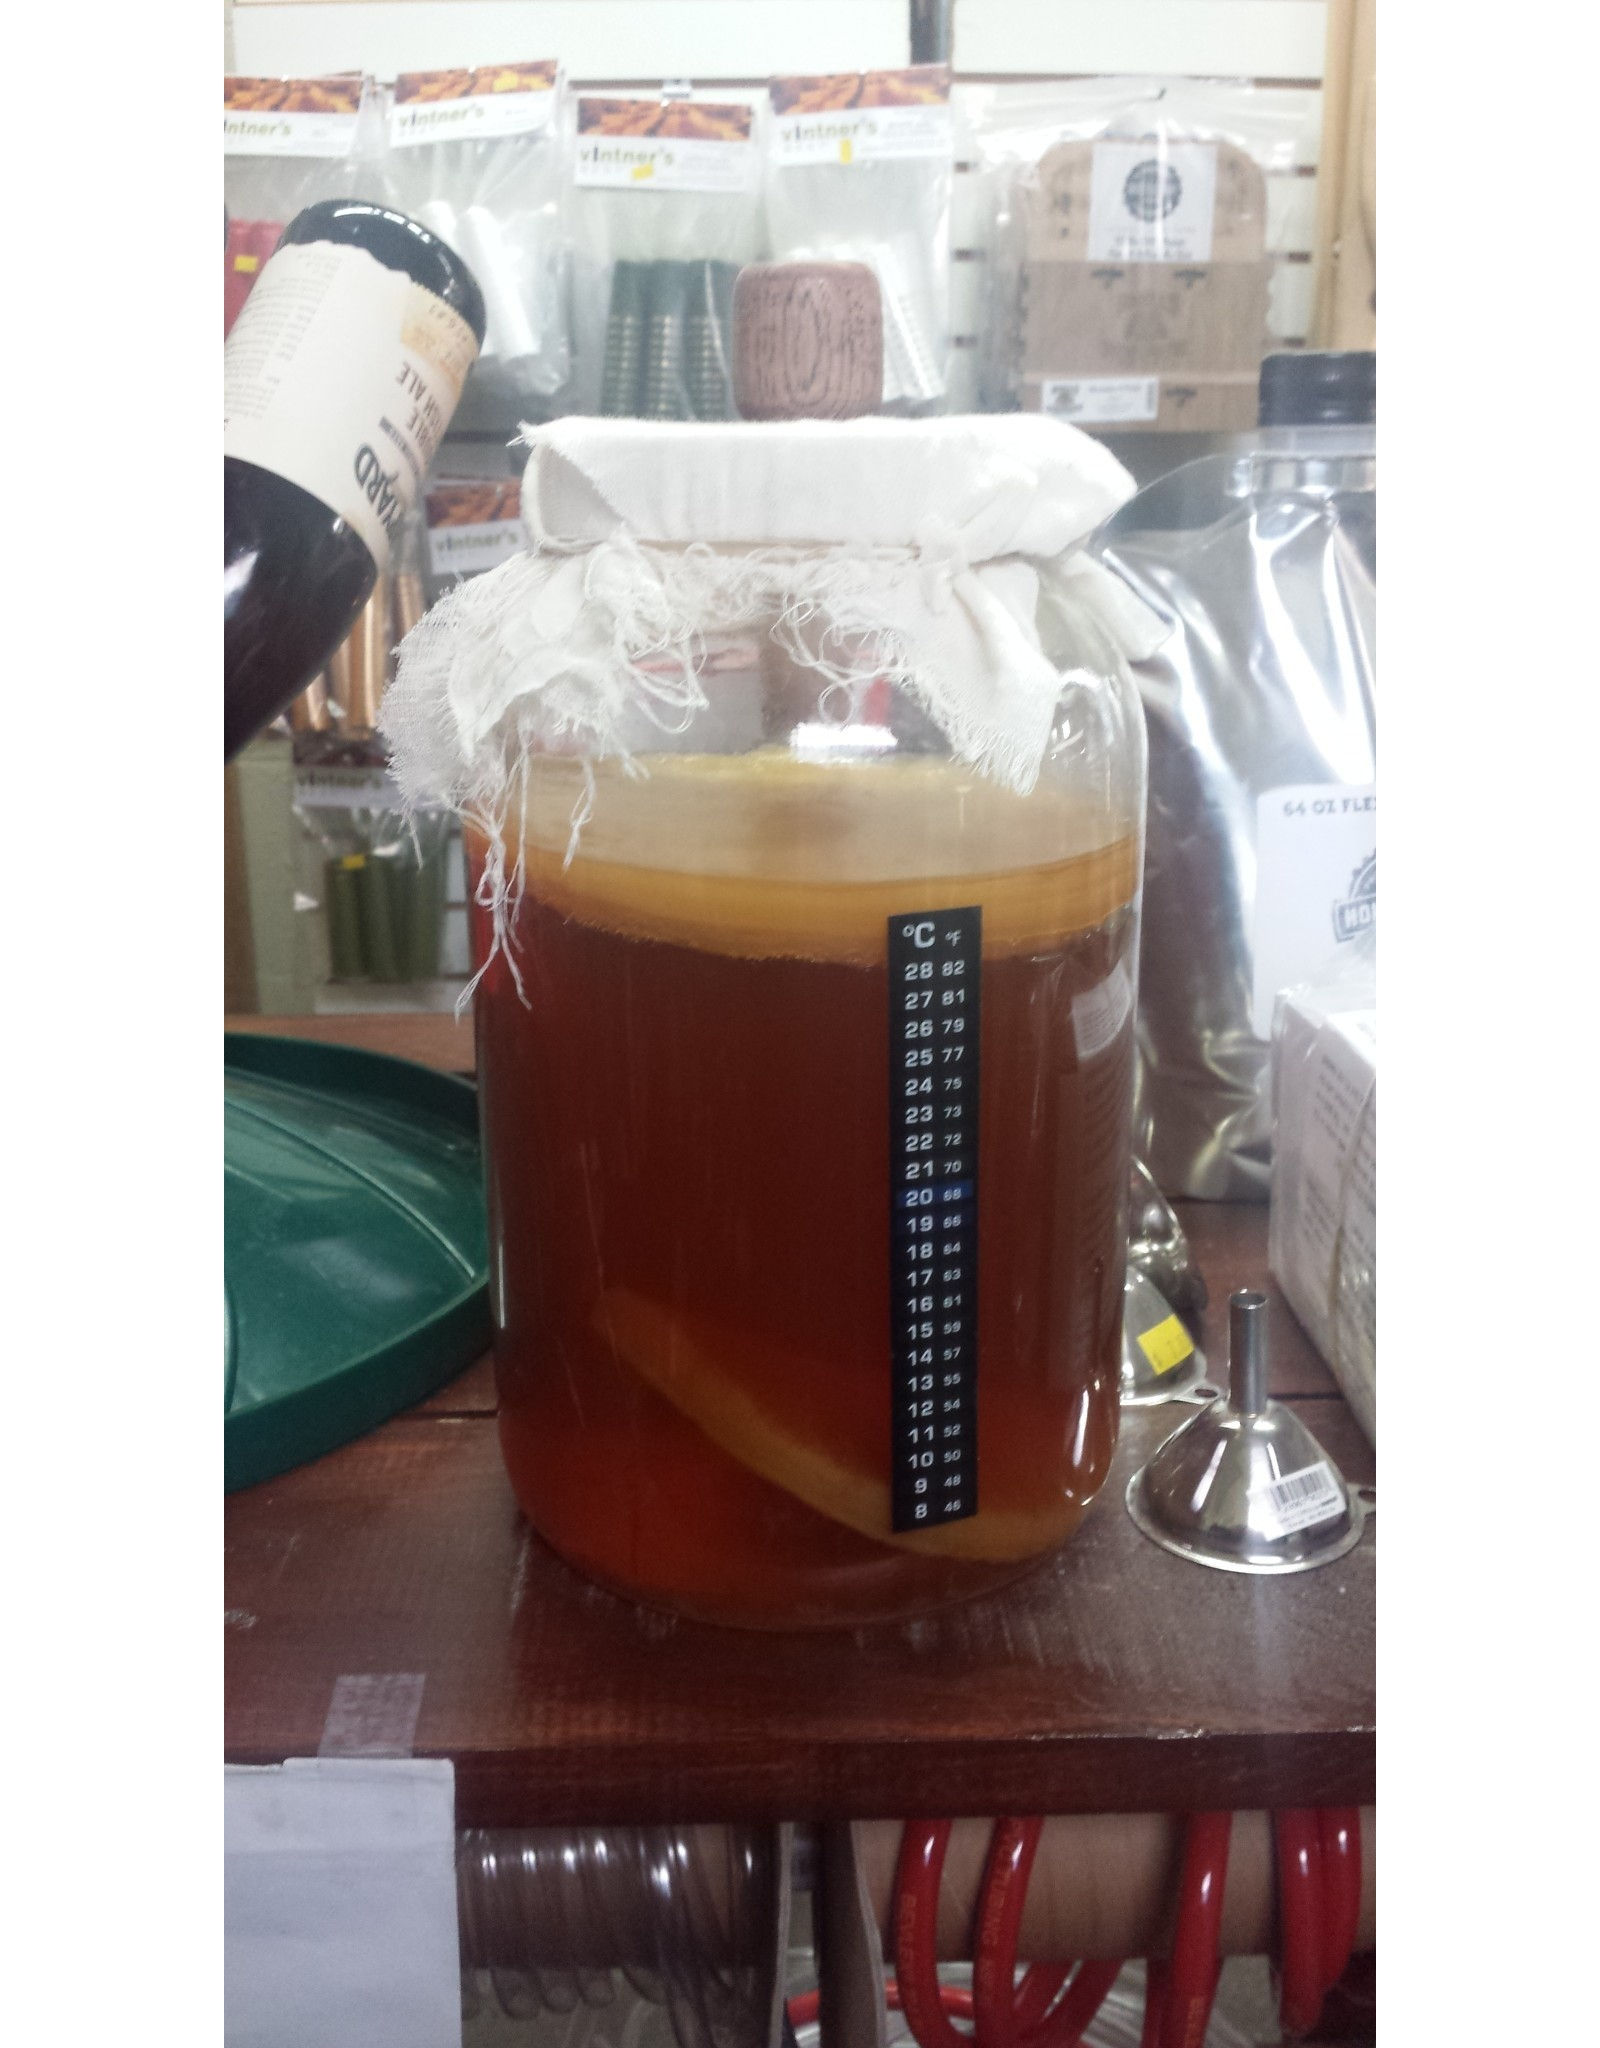 Philly Homebrew Outlet Kombucha One Gallon Kit W/SCOBY kk